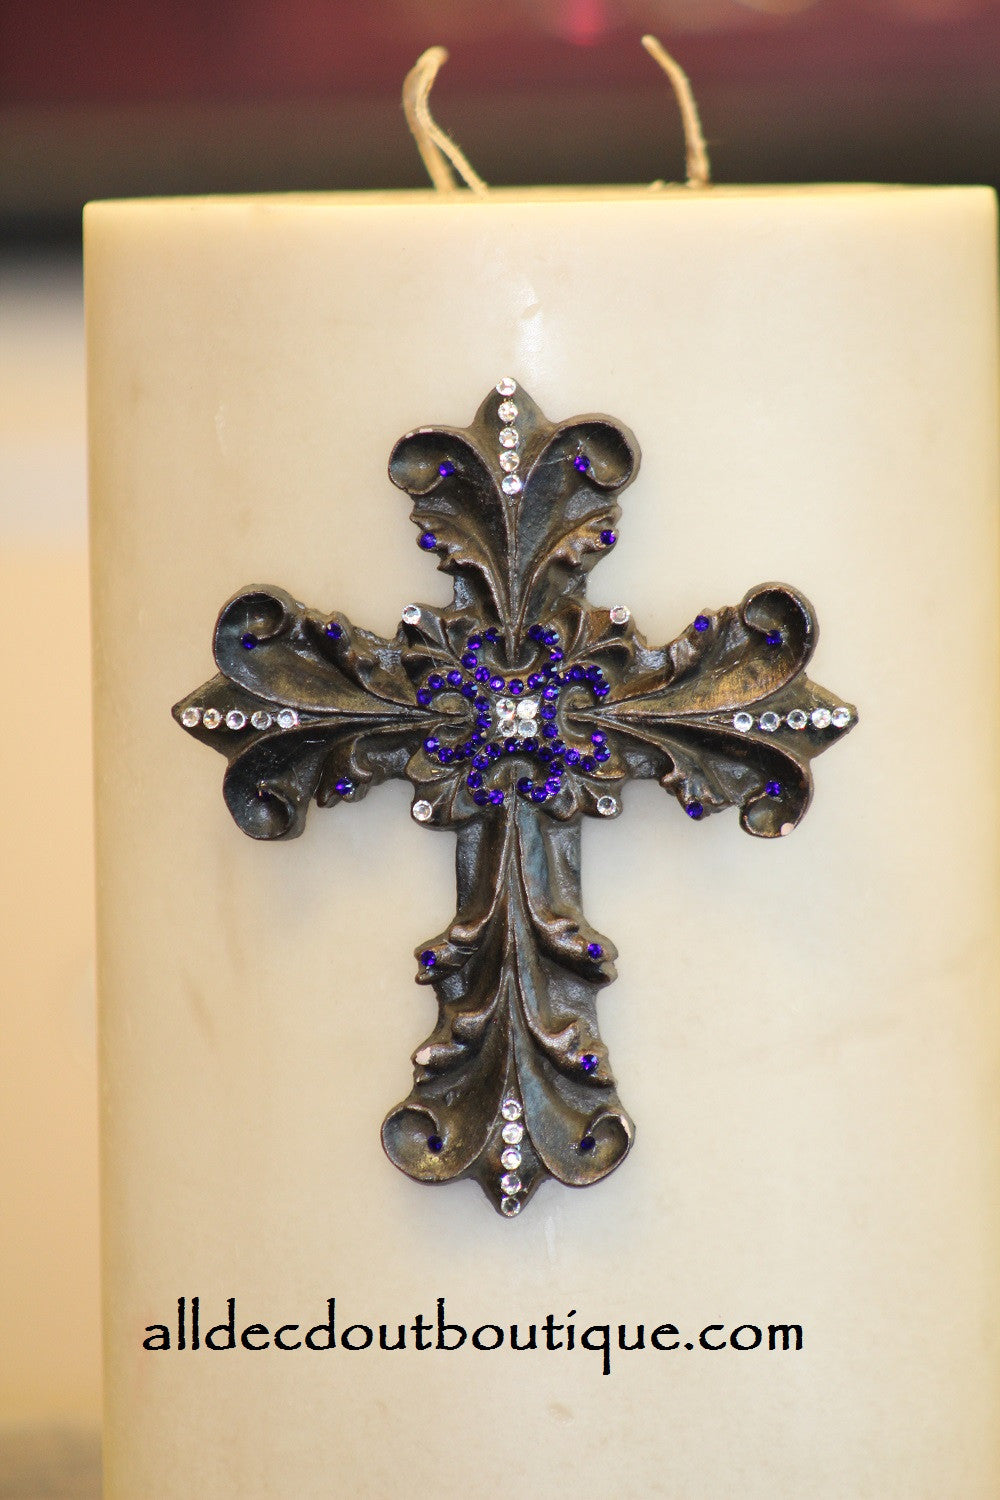 DECORATIVE CANDLE PIN EMBELLISHED | Royal Purple/White Crystals Large Cross